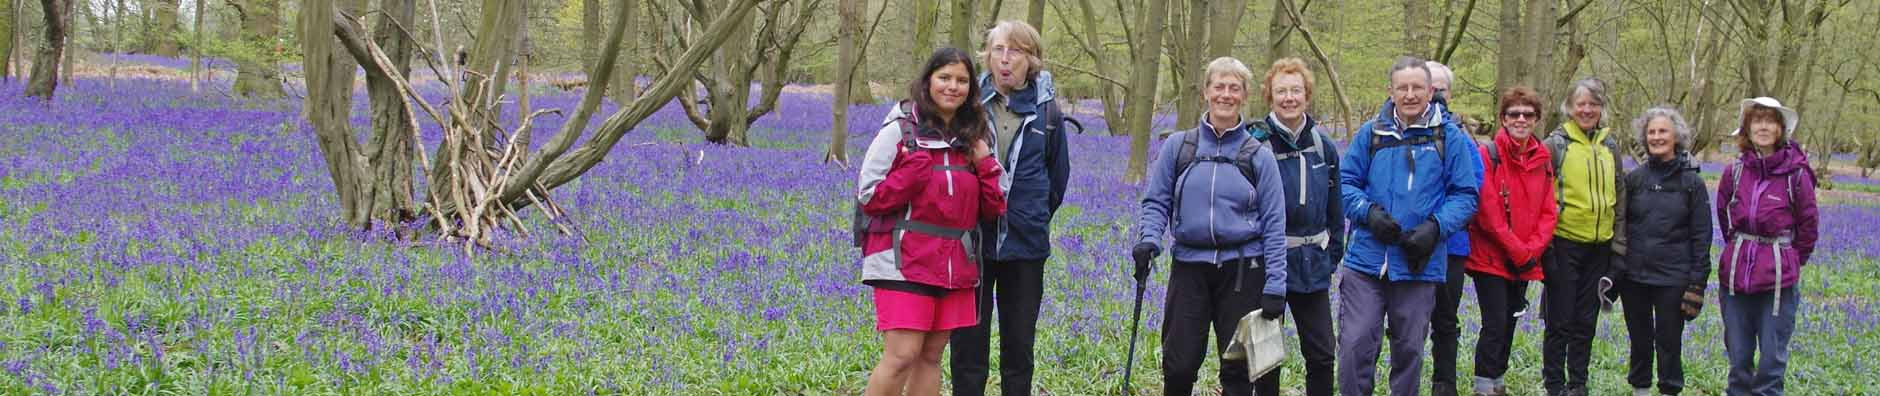 Bluebell woods, Gt Offley walk - Apr 2016